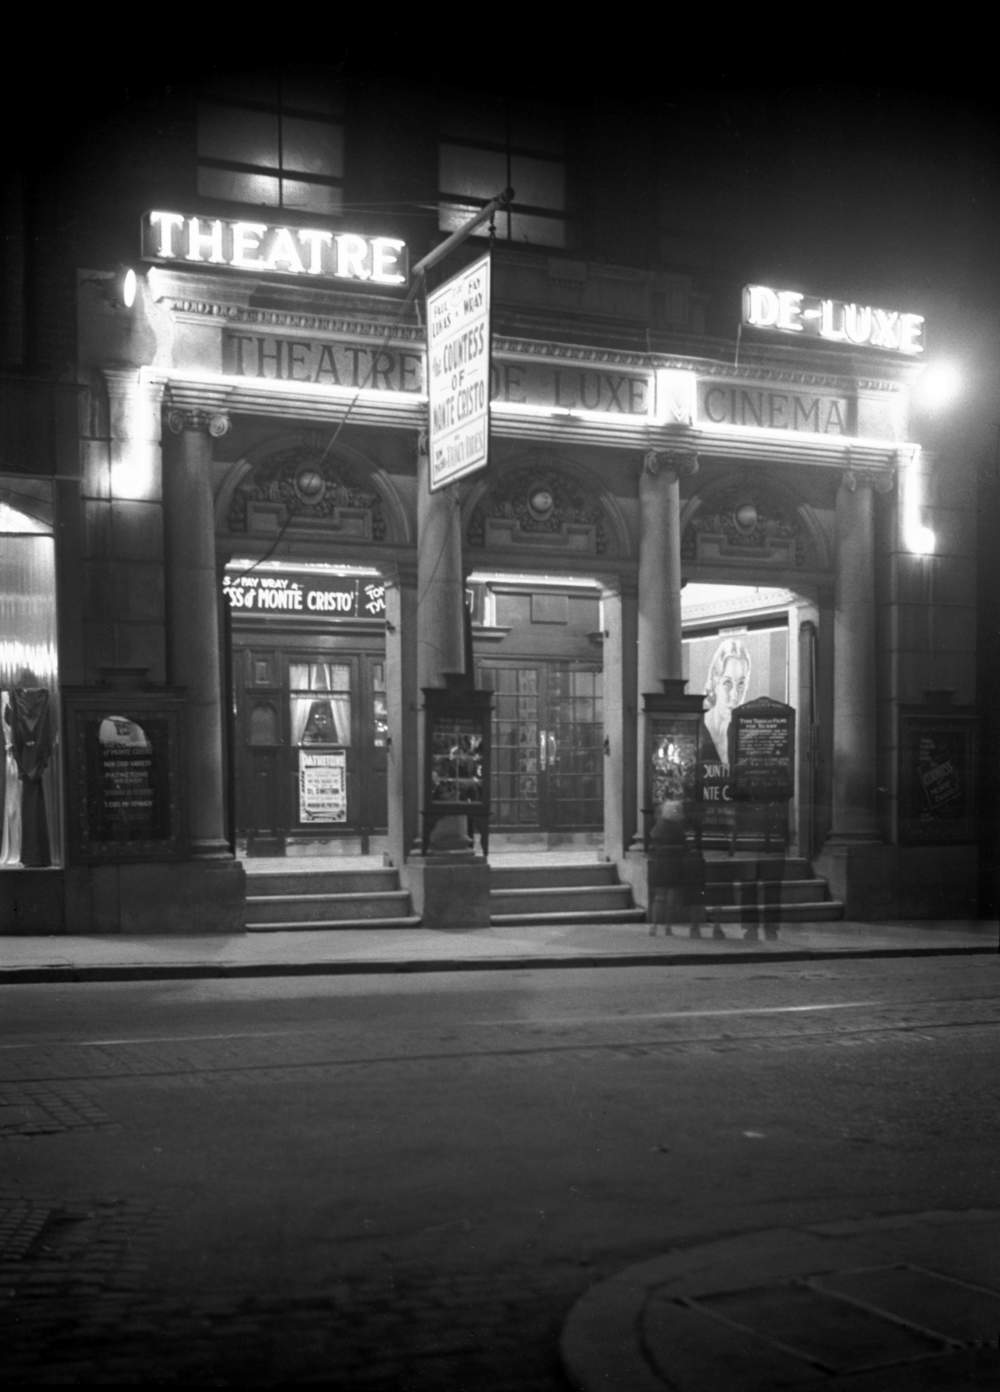 St Andrews Theatre de Luxe 1934